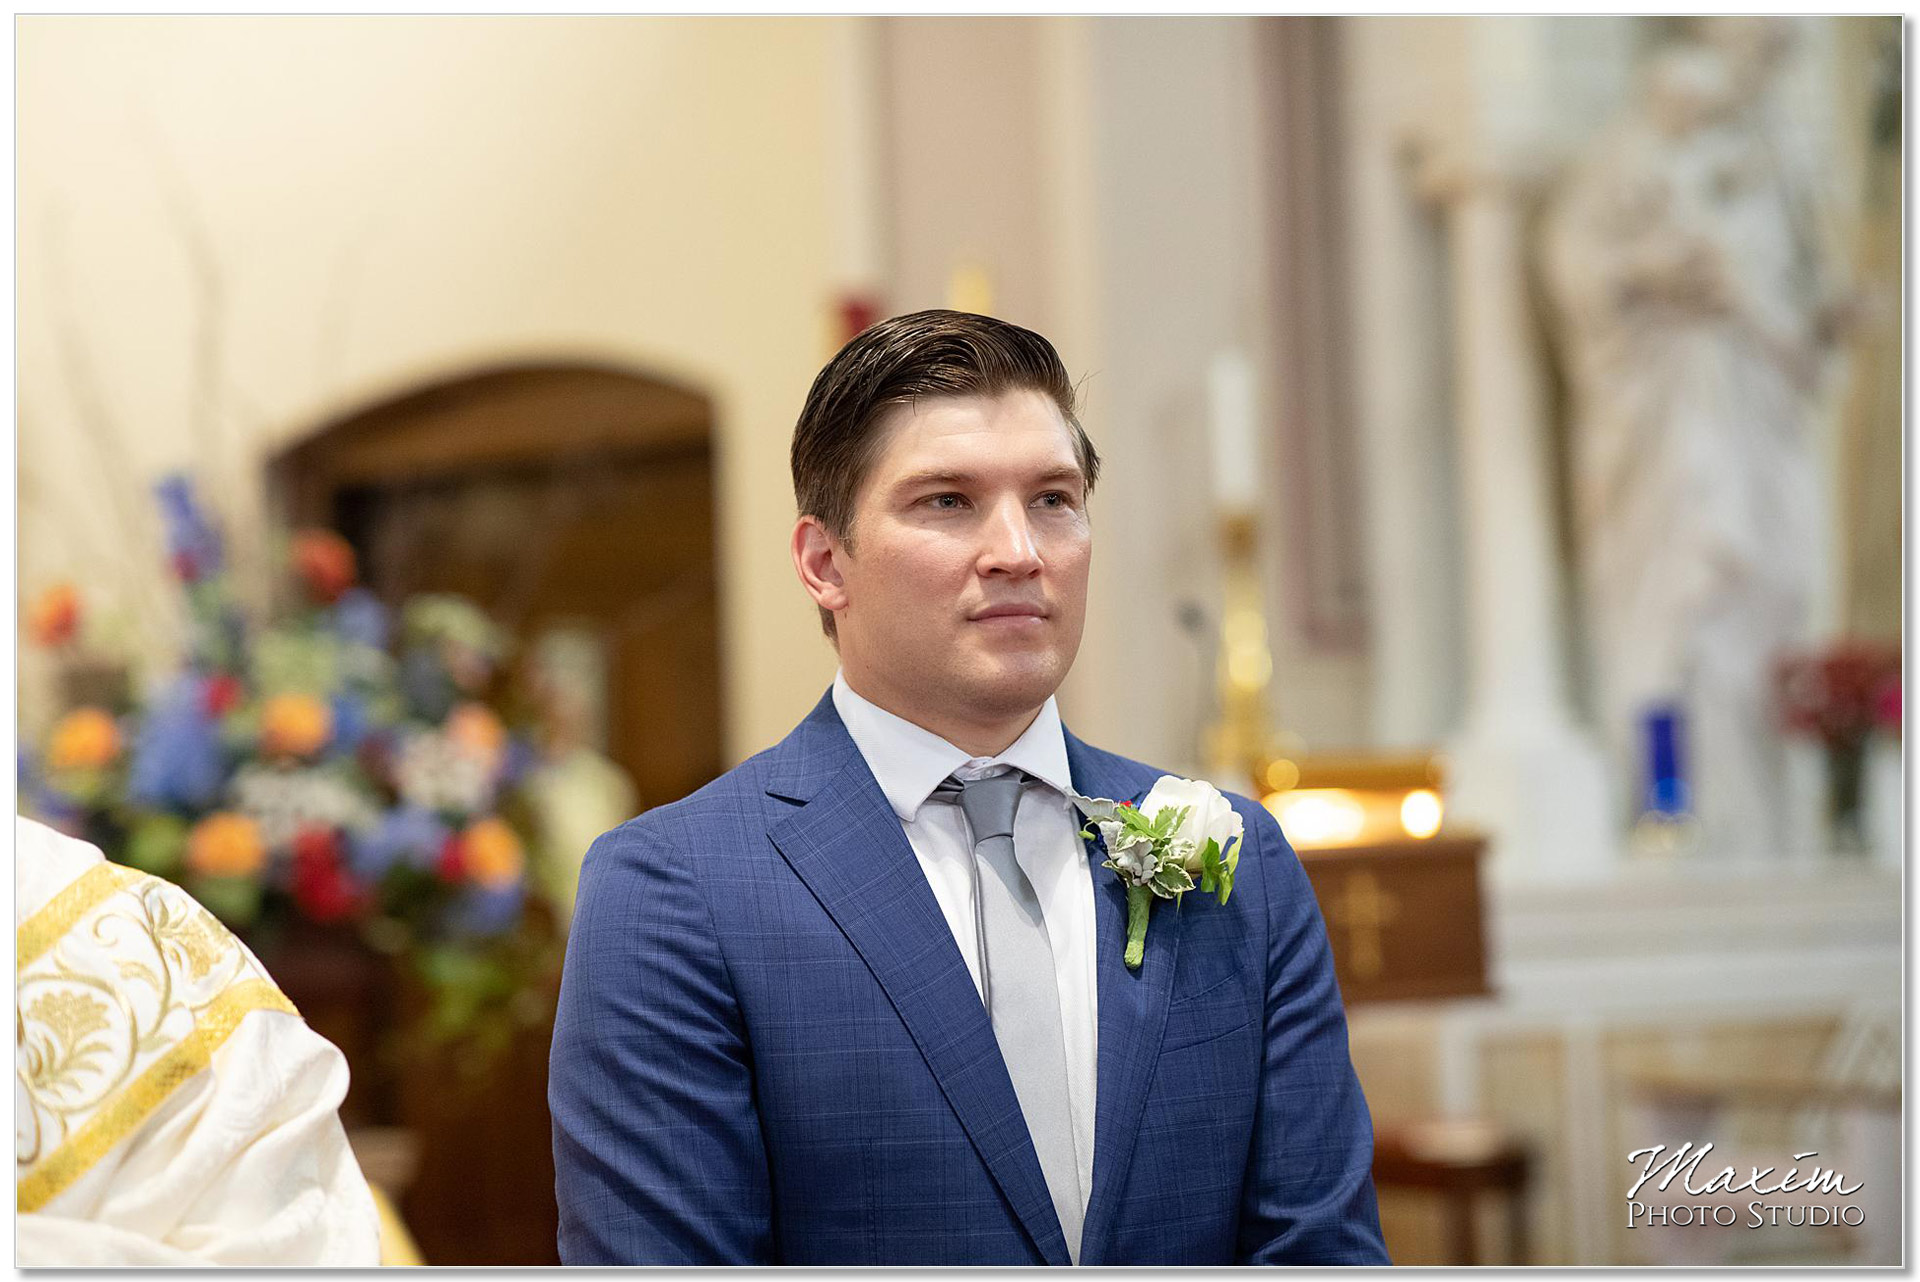 Groom at St. Joseph Catholic Church Ceremony